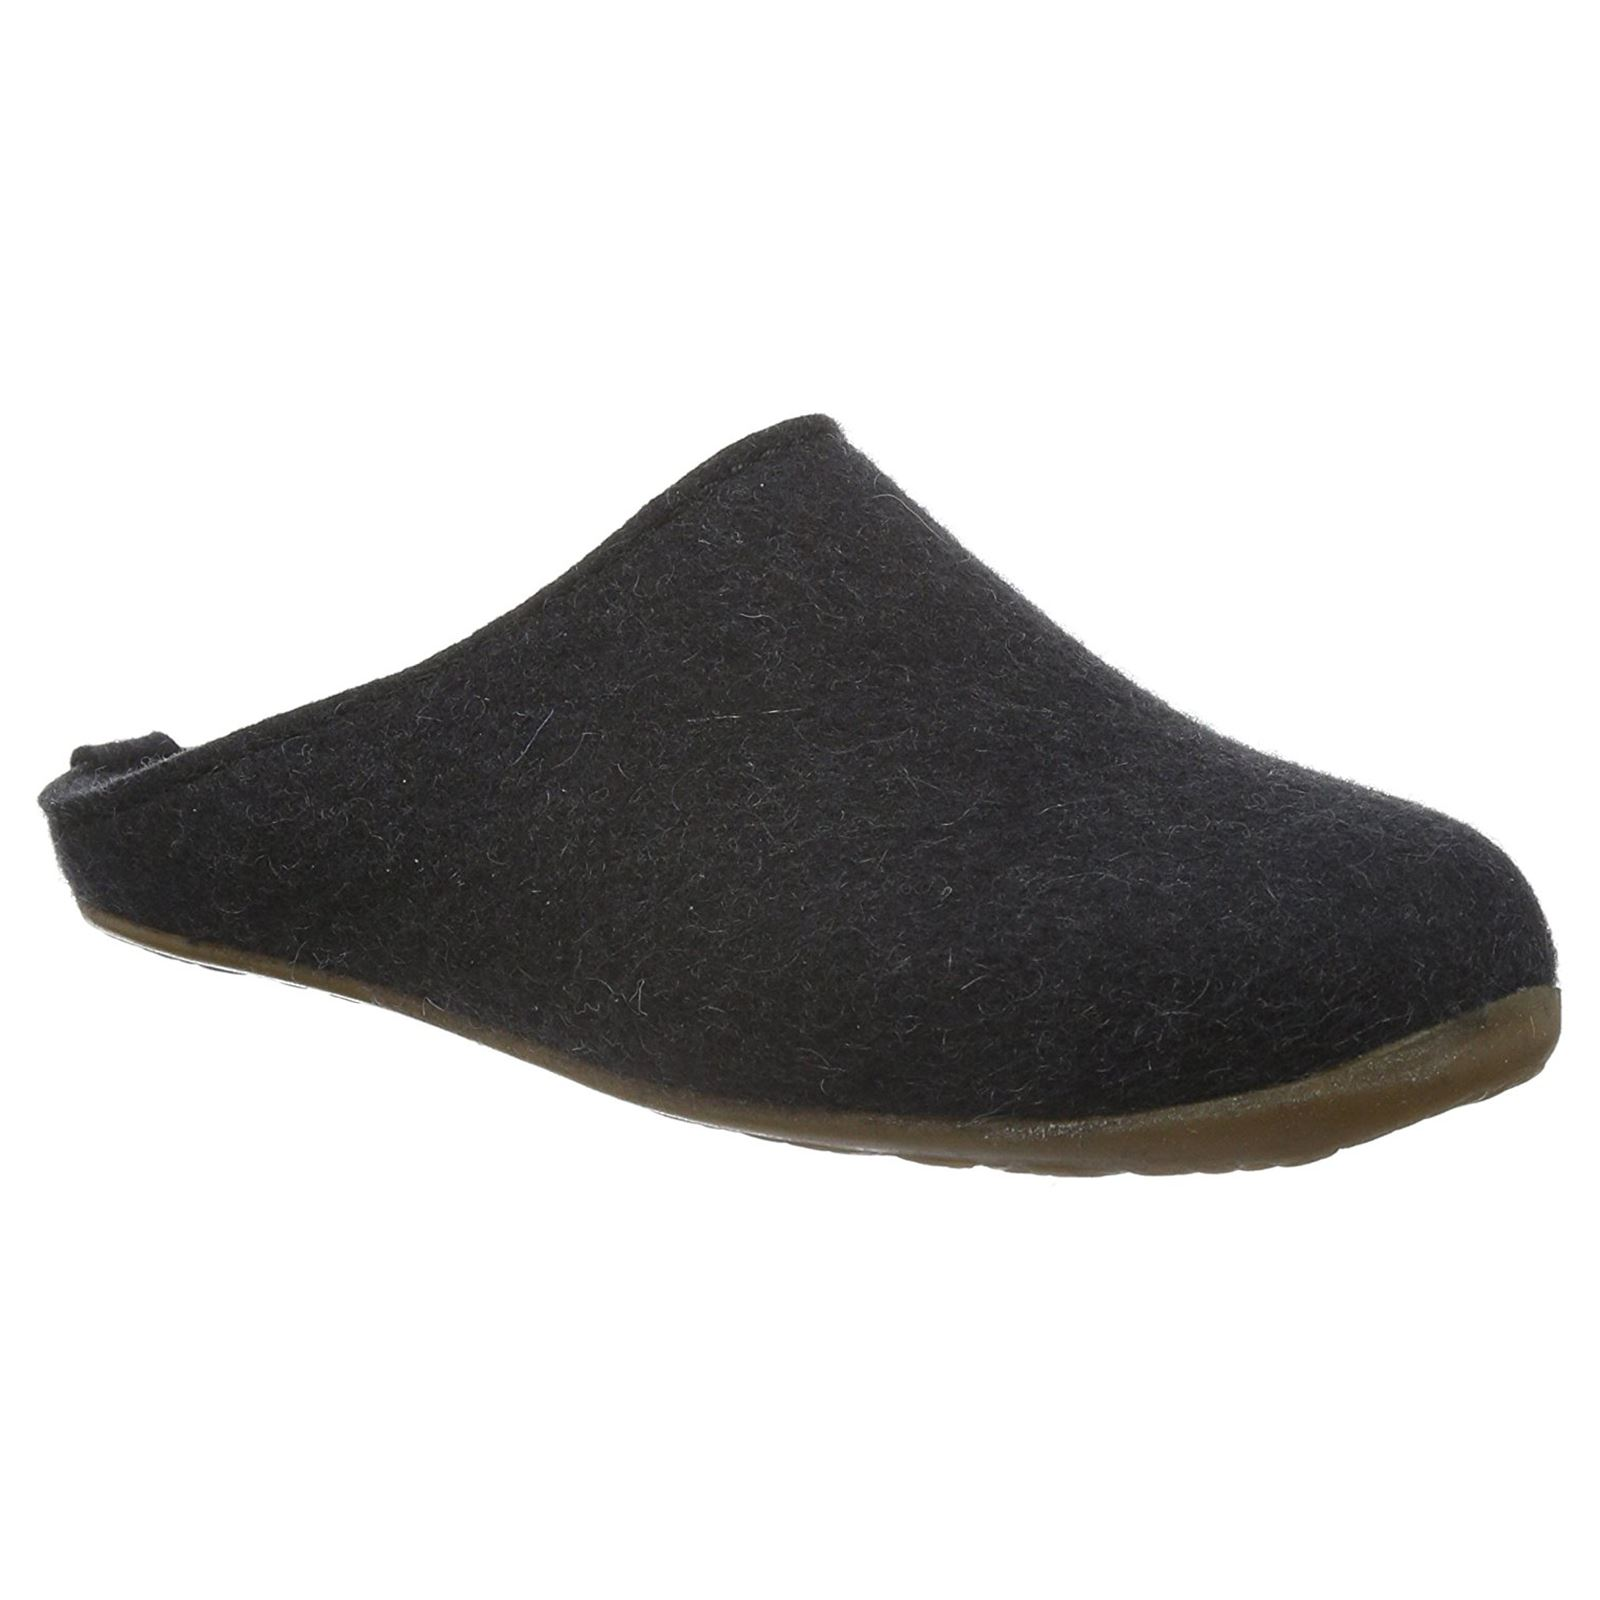 Haflinger Everest Fundus Graphite Womens Wool Clogs Slip-on Open Back Slippers